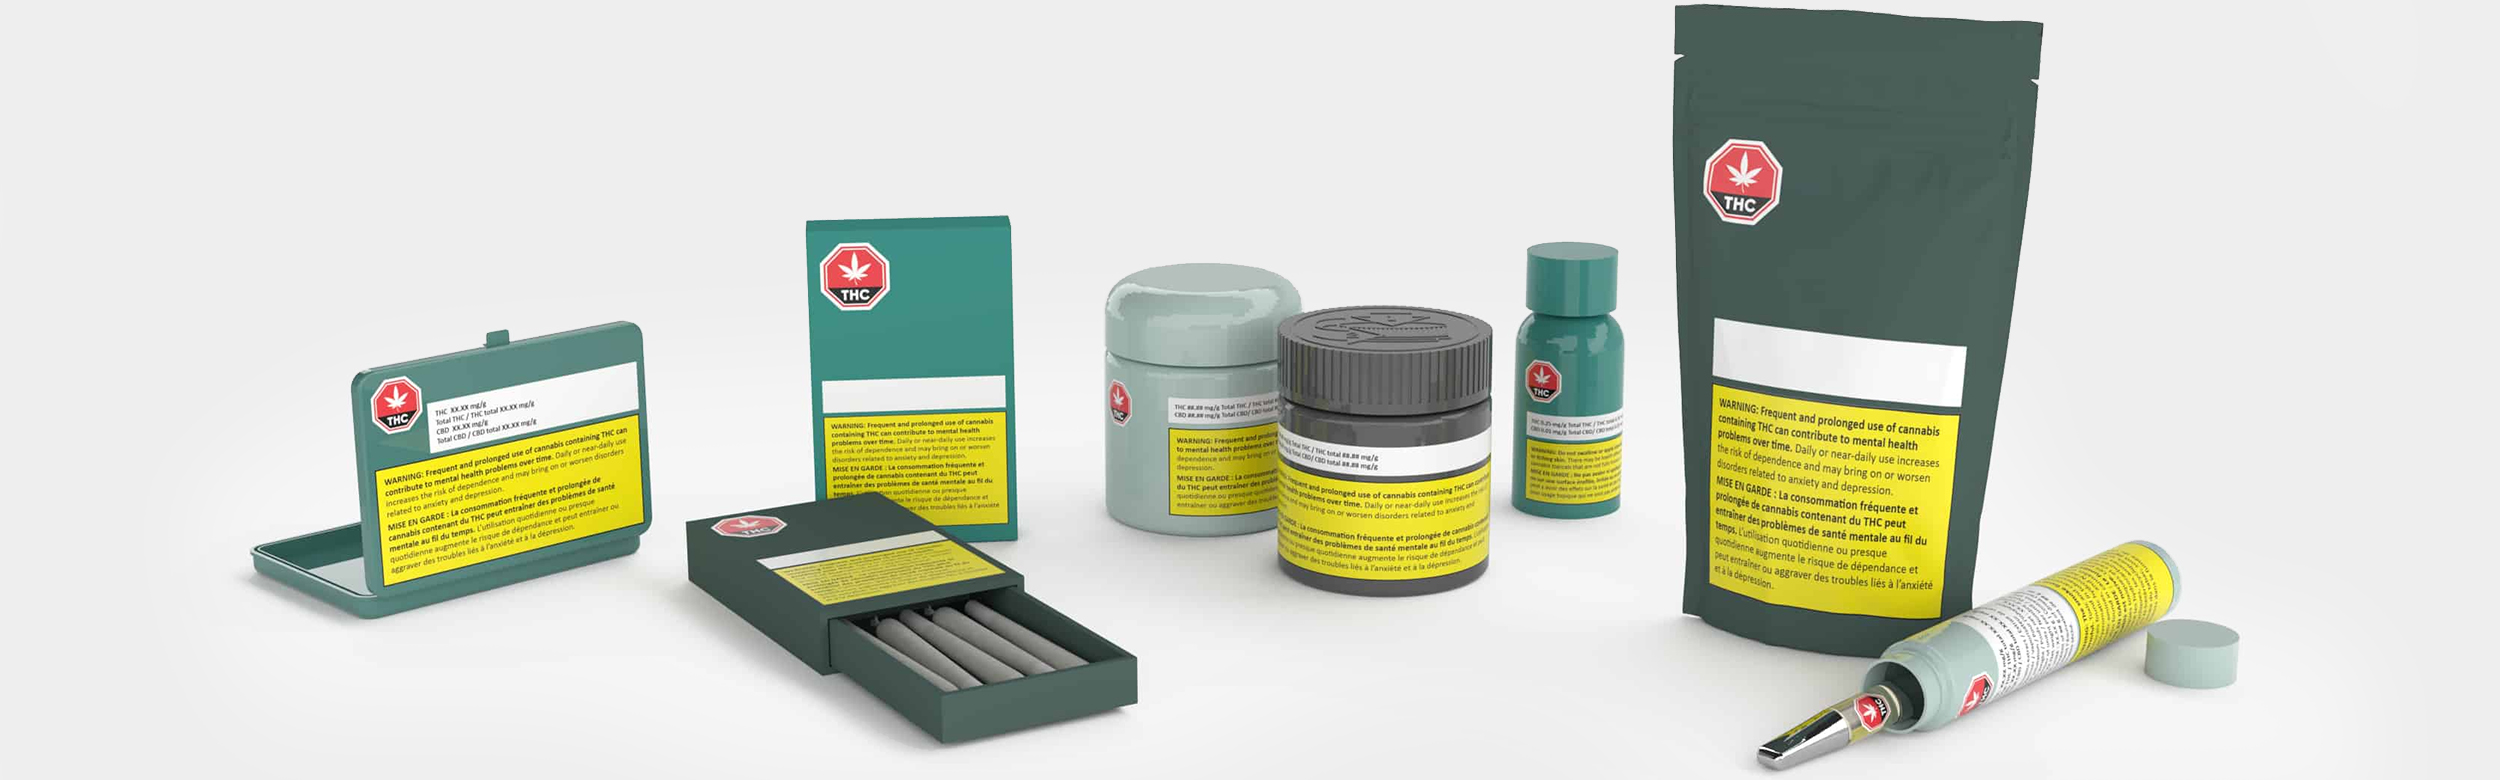 Cannasupplies Compliant Child-Resistant Packaging Solutions